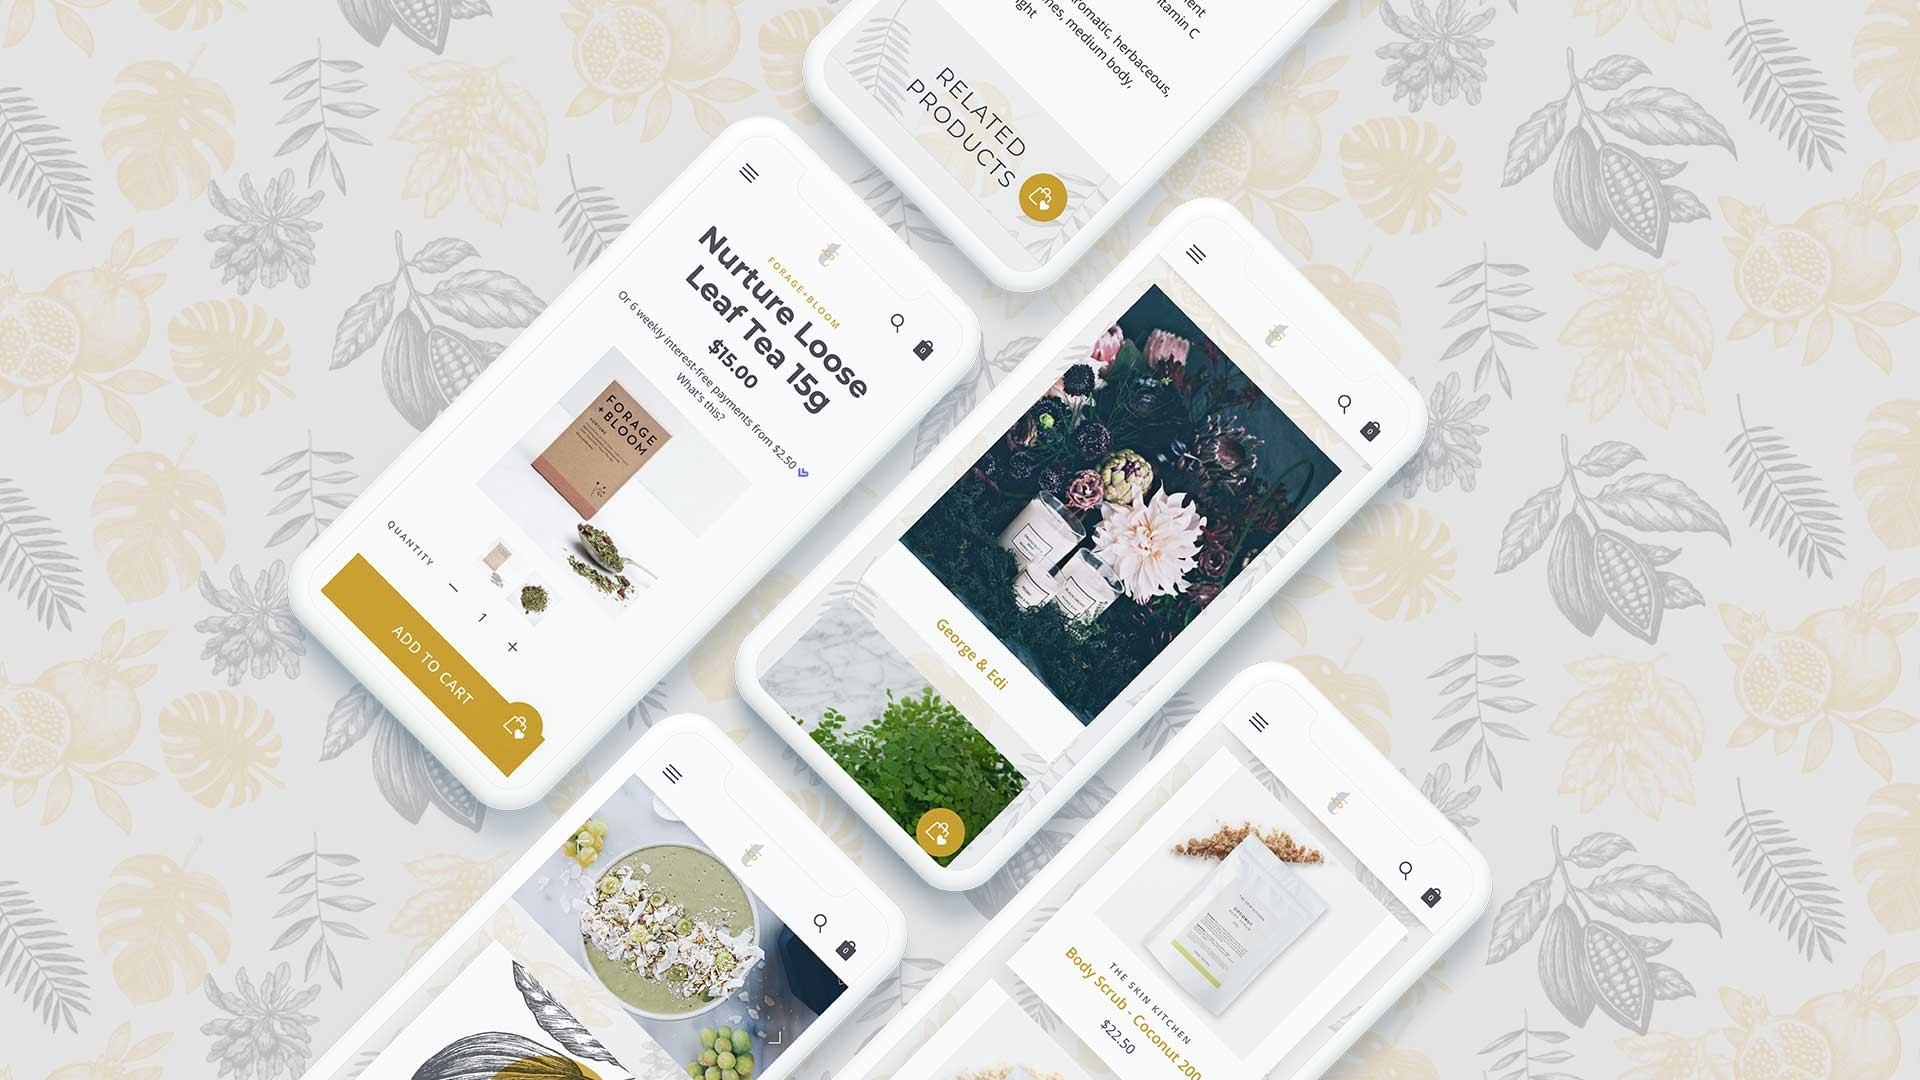 Temple+Co website on smartphone screens with patterned background